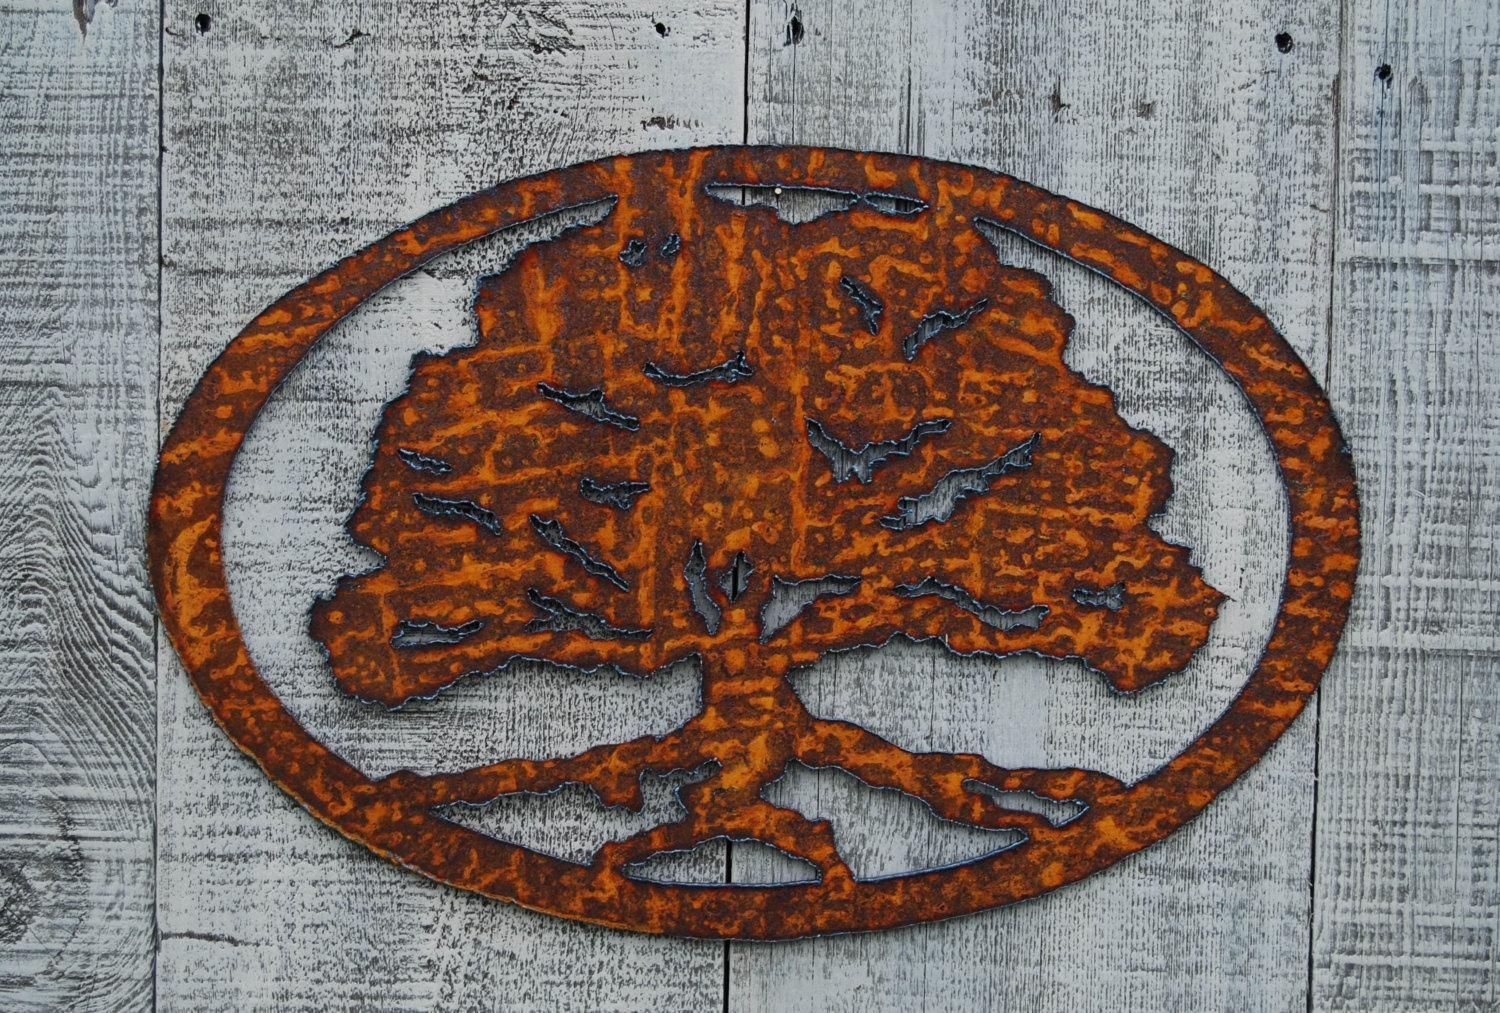 Oak Tree Rusty Metal Wall Art Pertaining To Metal Oak Tree Wall Art (Image 14 of 20)